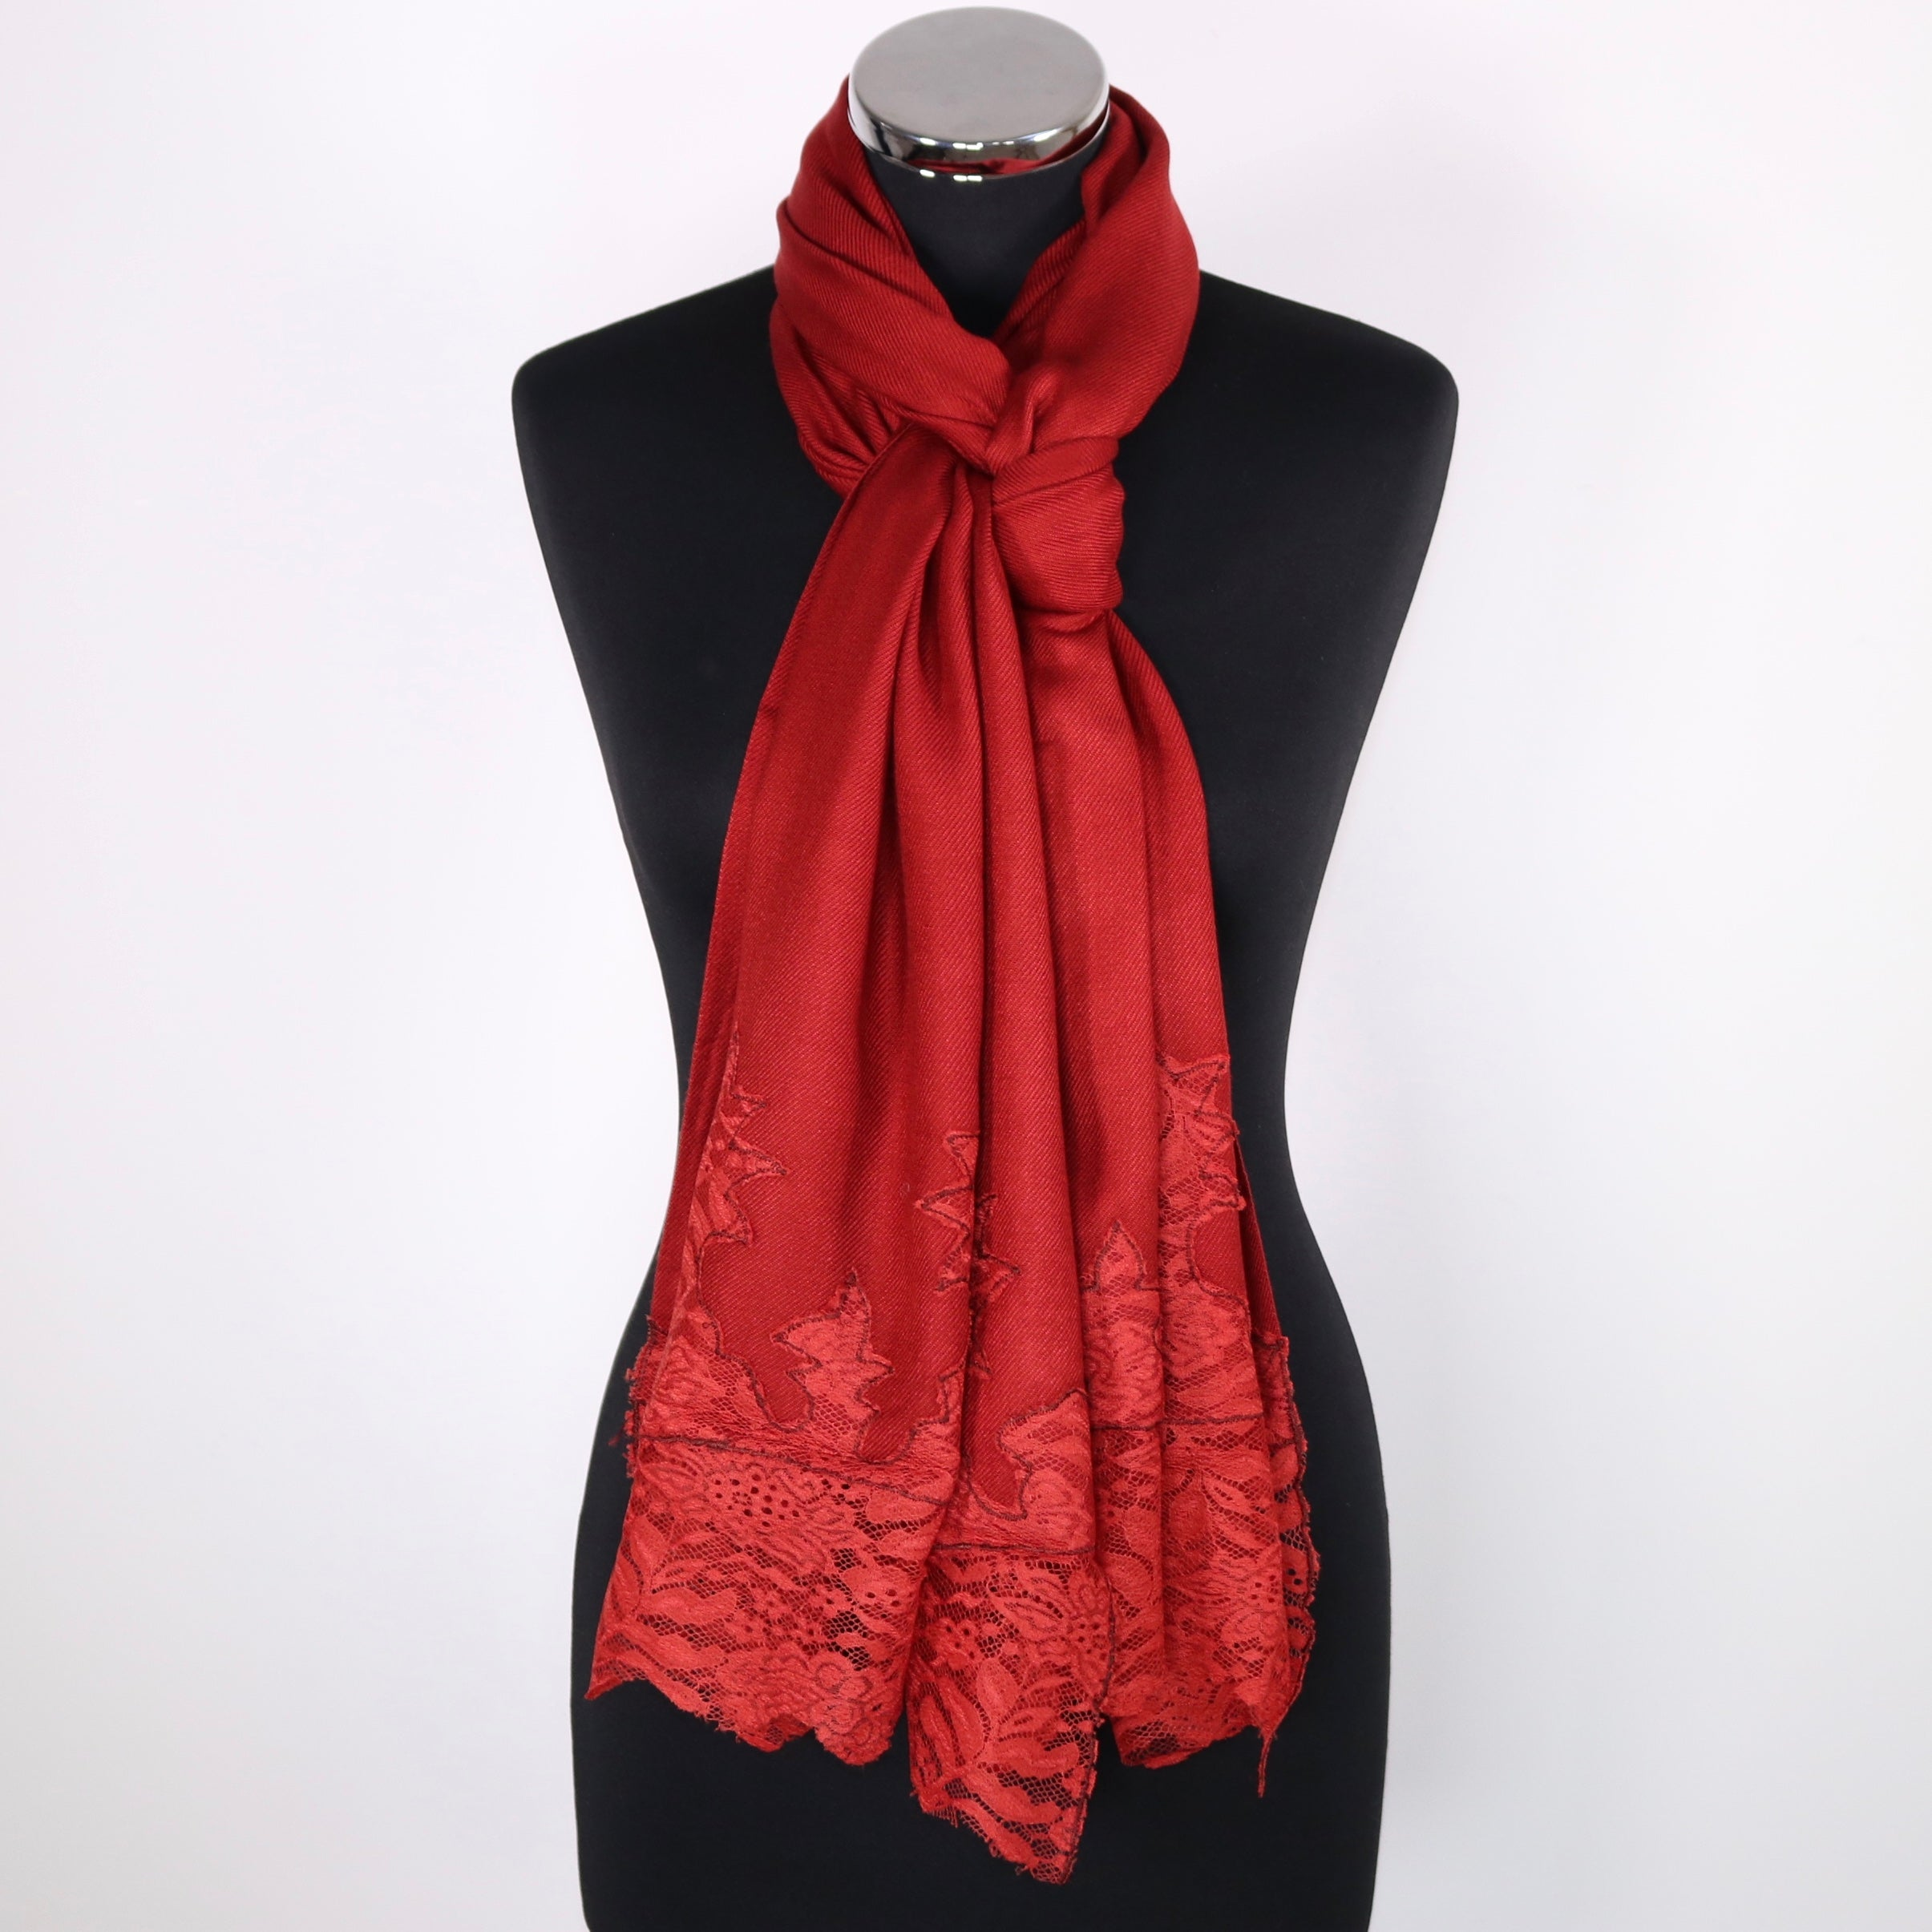 Piper Viscose Scarf With Lace Border